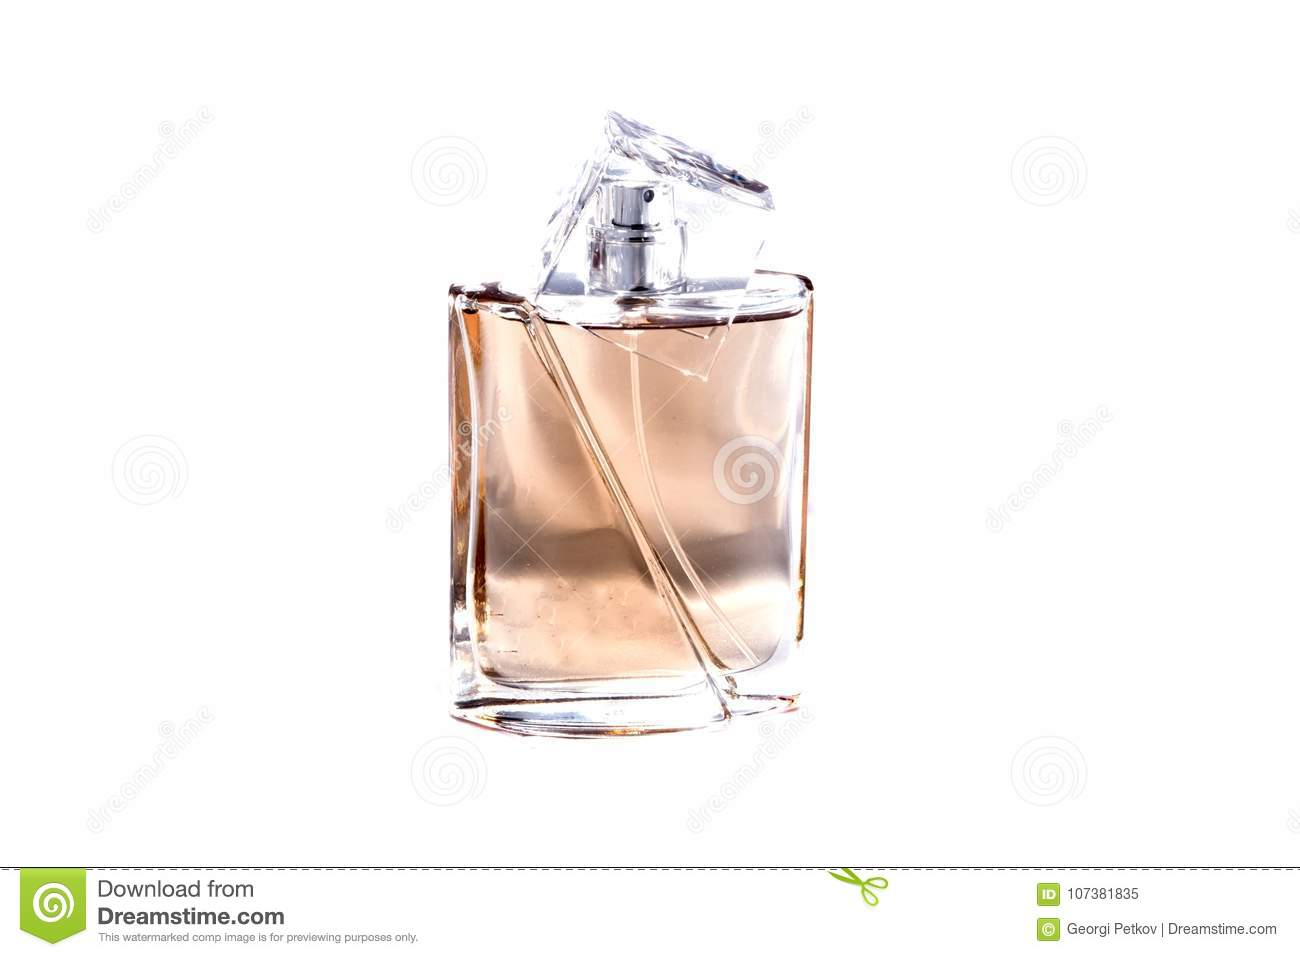 Parfume on a white background